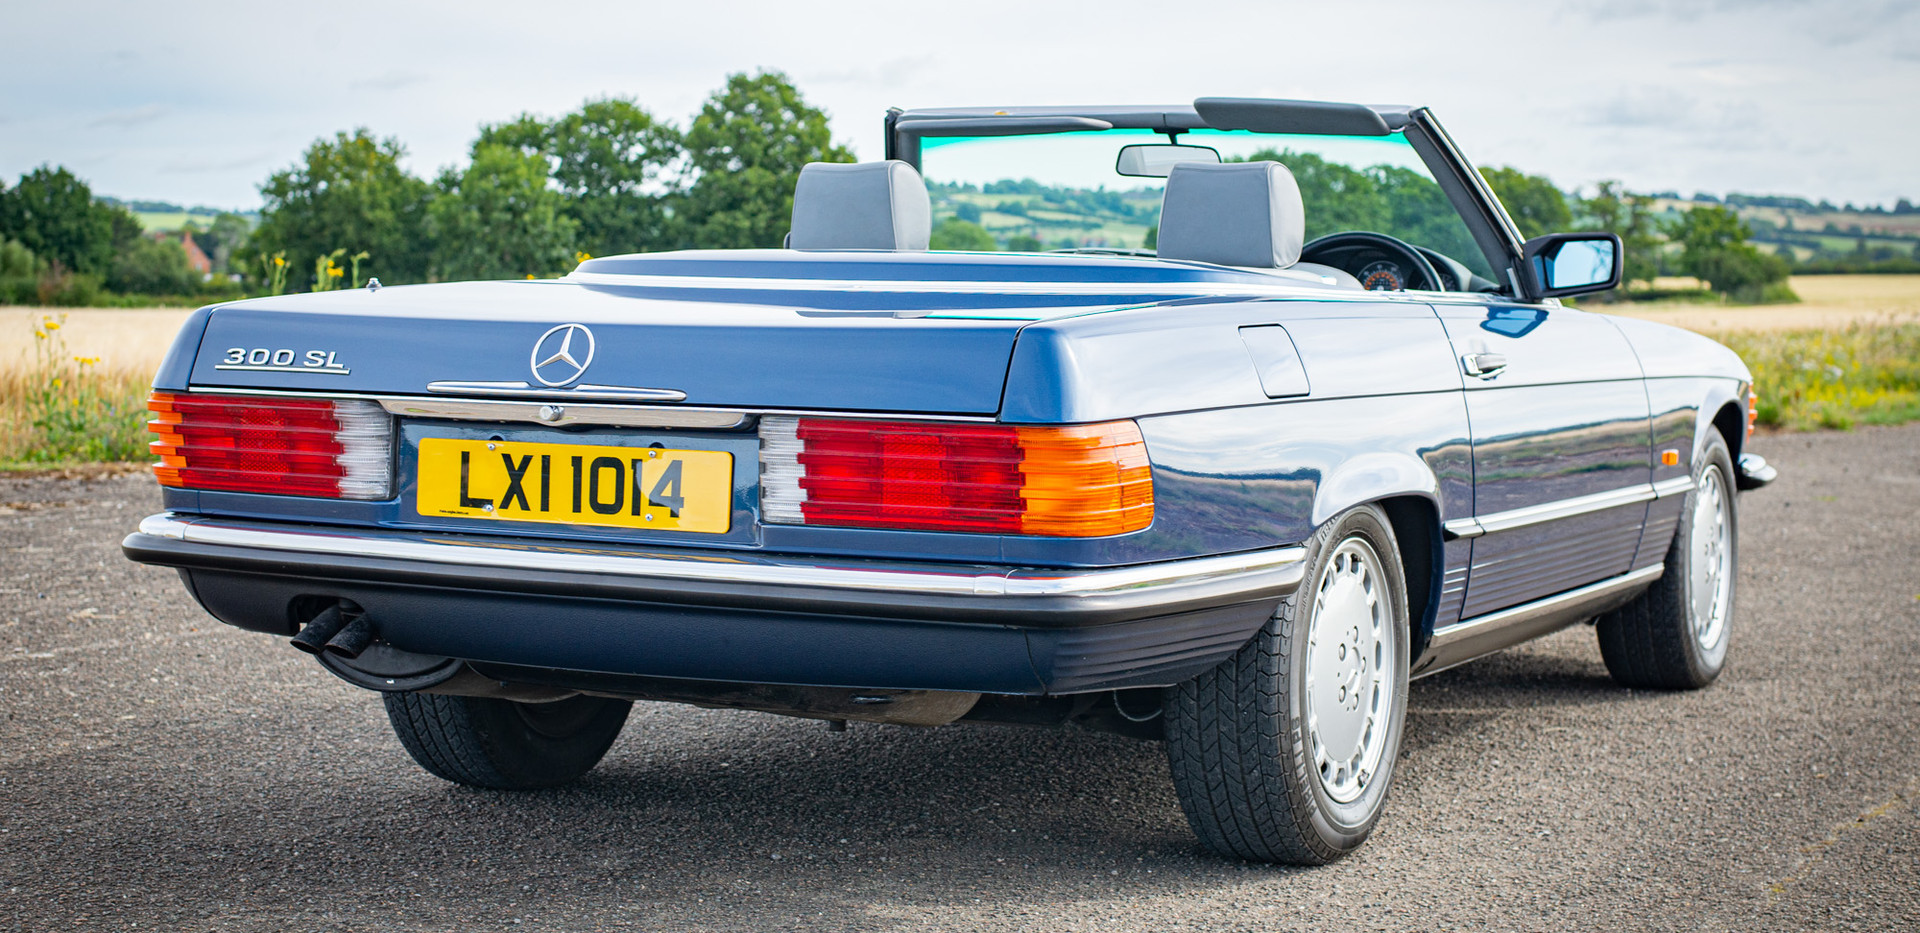 300SL 107 Blue for sale Uk london-16.jpg